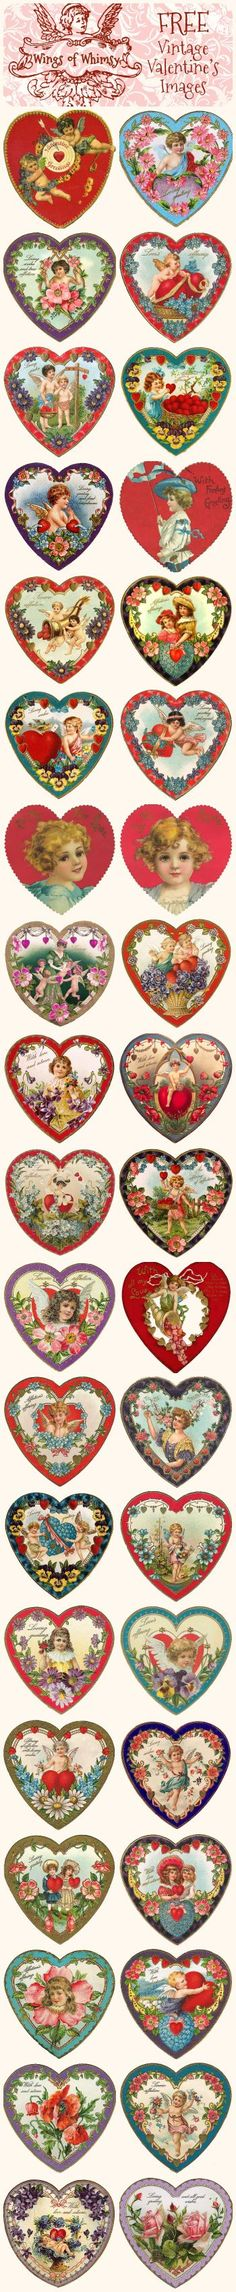 Valentine's Hearts – DAY 2 Wings of Whimsy: Valentine Hearts - free for personal use.Wings of Whimsy: Valentine Hearts - free for personal use. Valentine Images, My Funny Valentine, Vintage Valentine Cards, Saint Valentine, Valentine Day Love, Valentine Day Crafts, Vintage Cards, Vintage Postcards, Vintage Ephemera